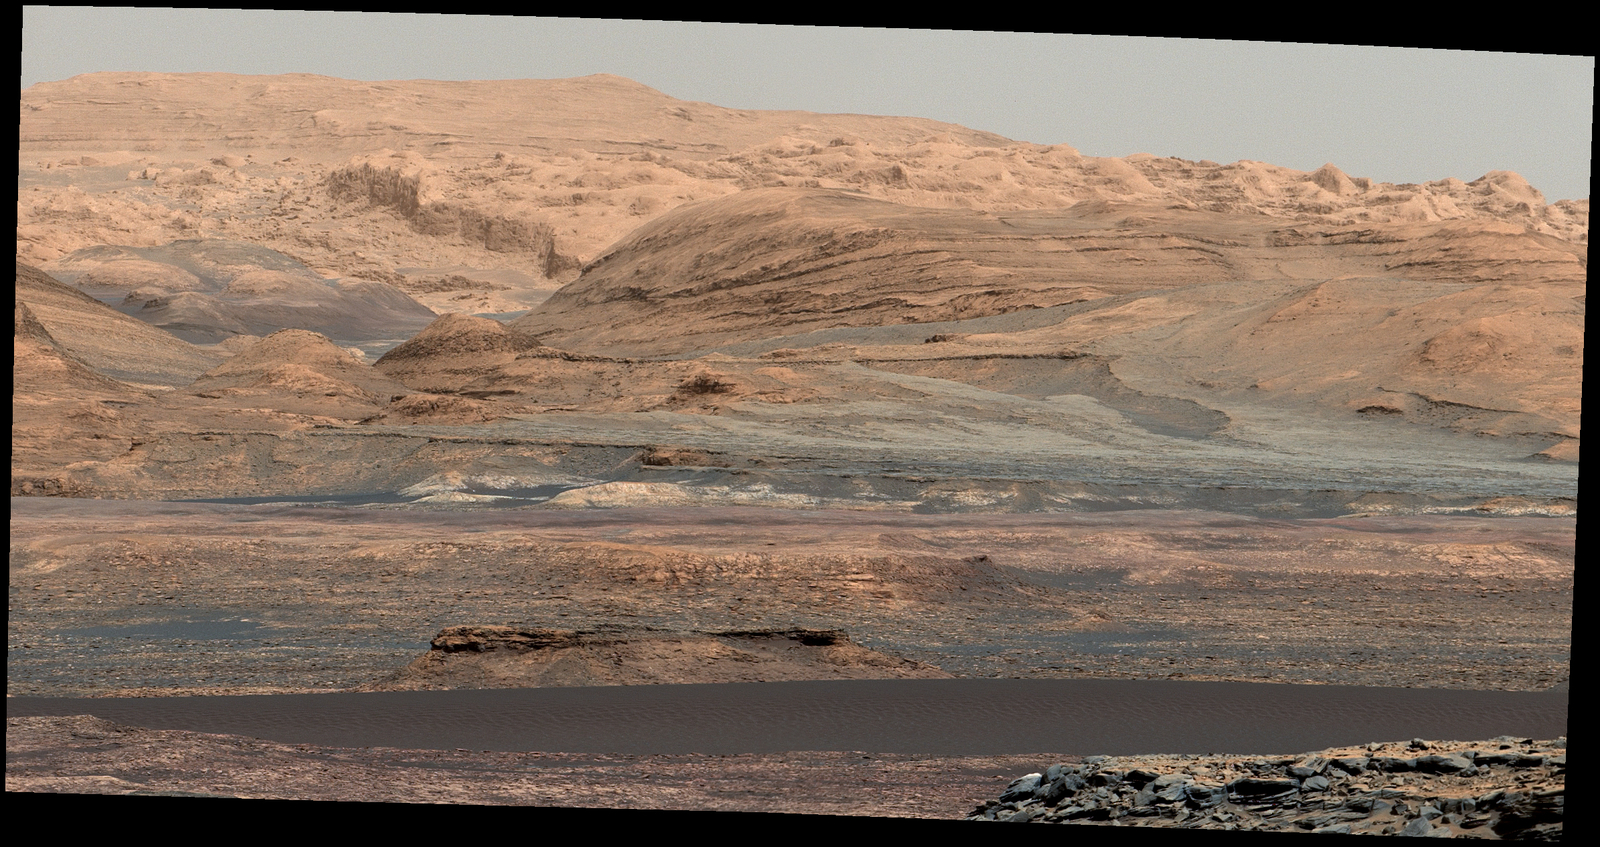 Glimpse of 'Bagnold Dunes' Edging Mount Sharp